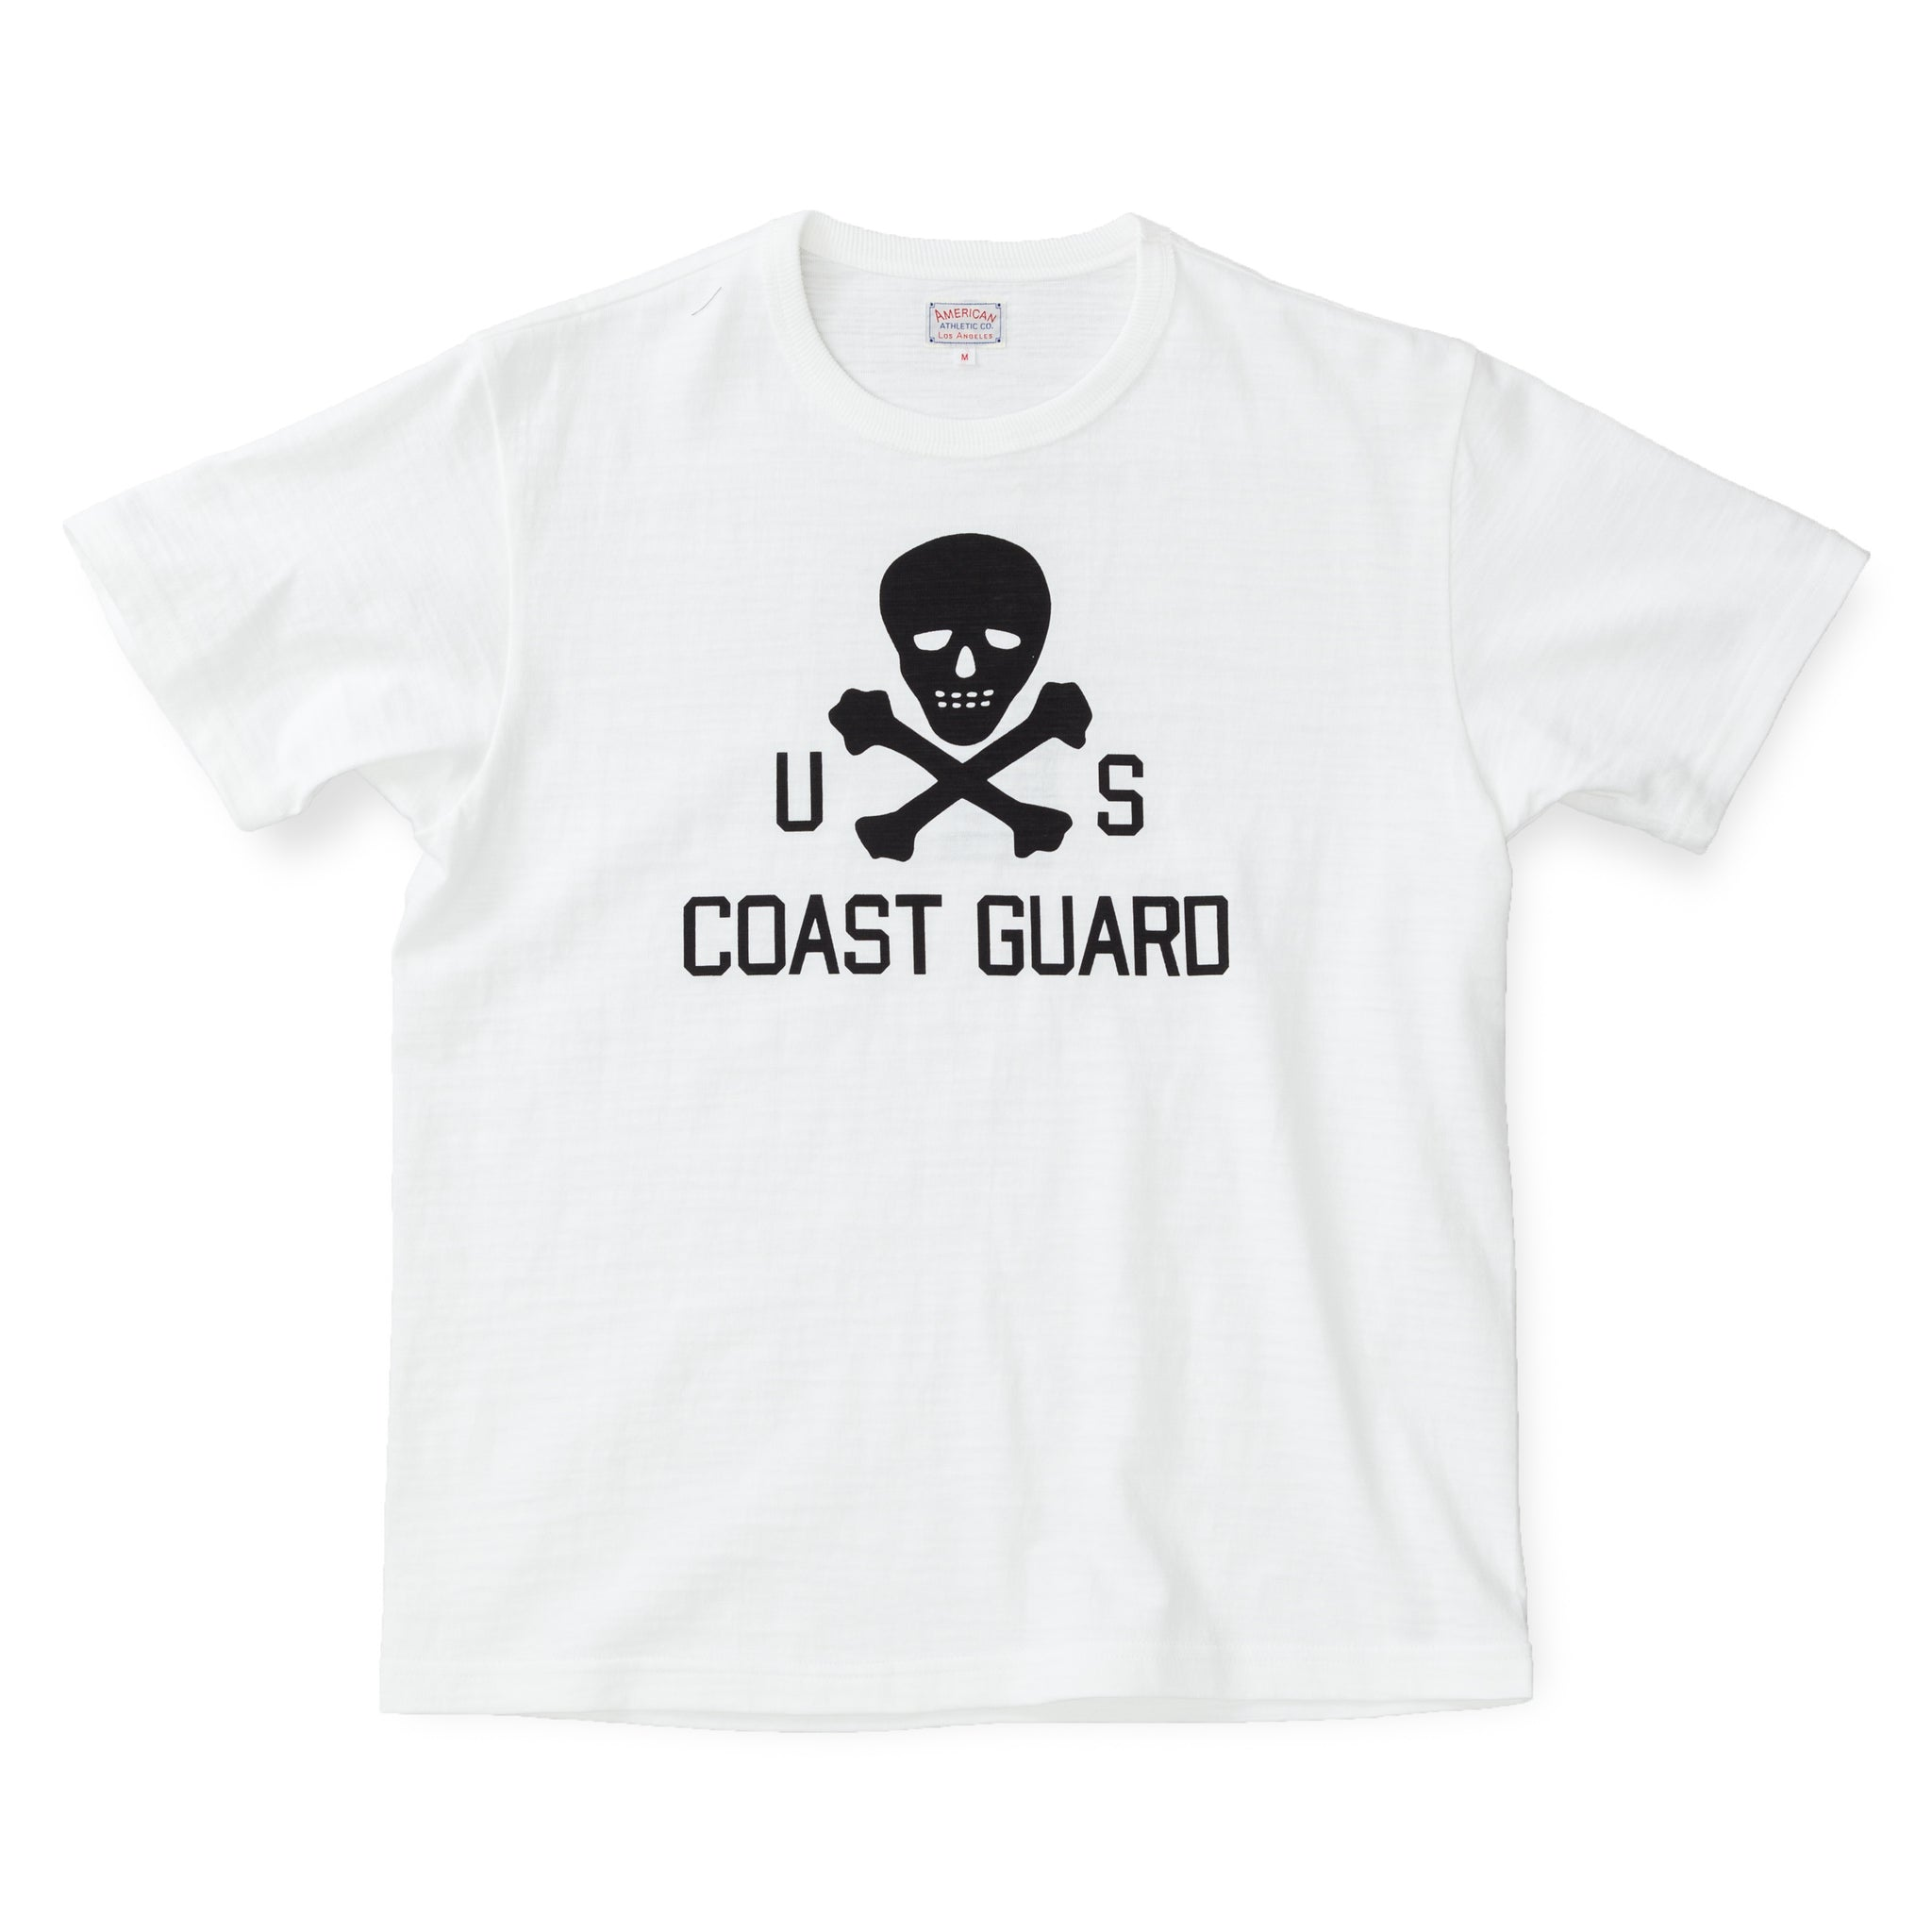 American Athletic Tee / U.S. Coast Guard